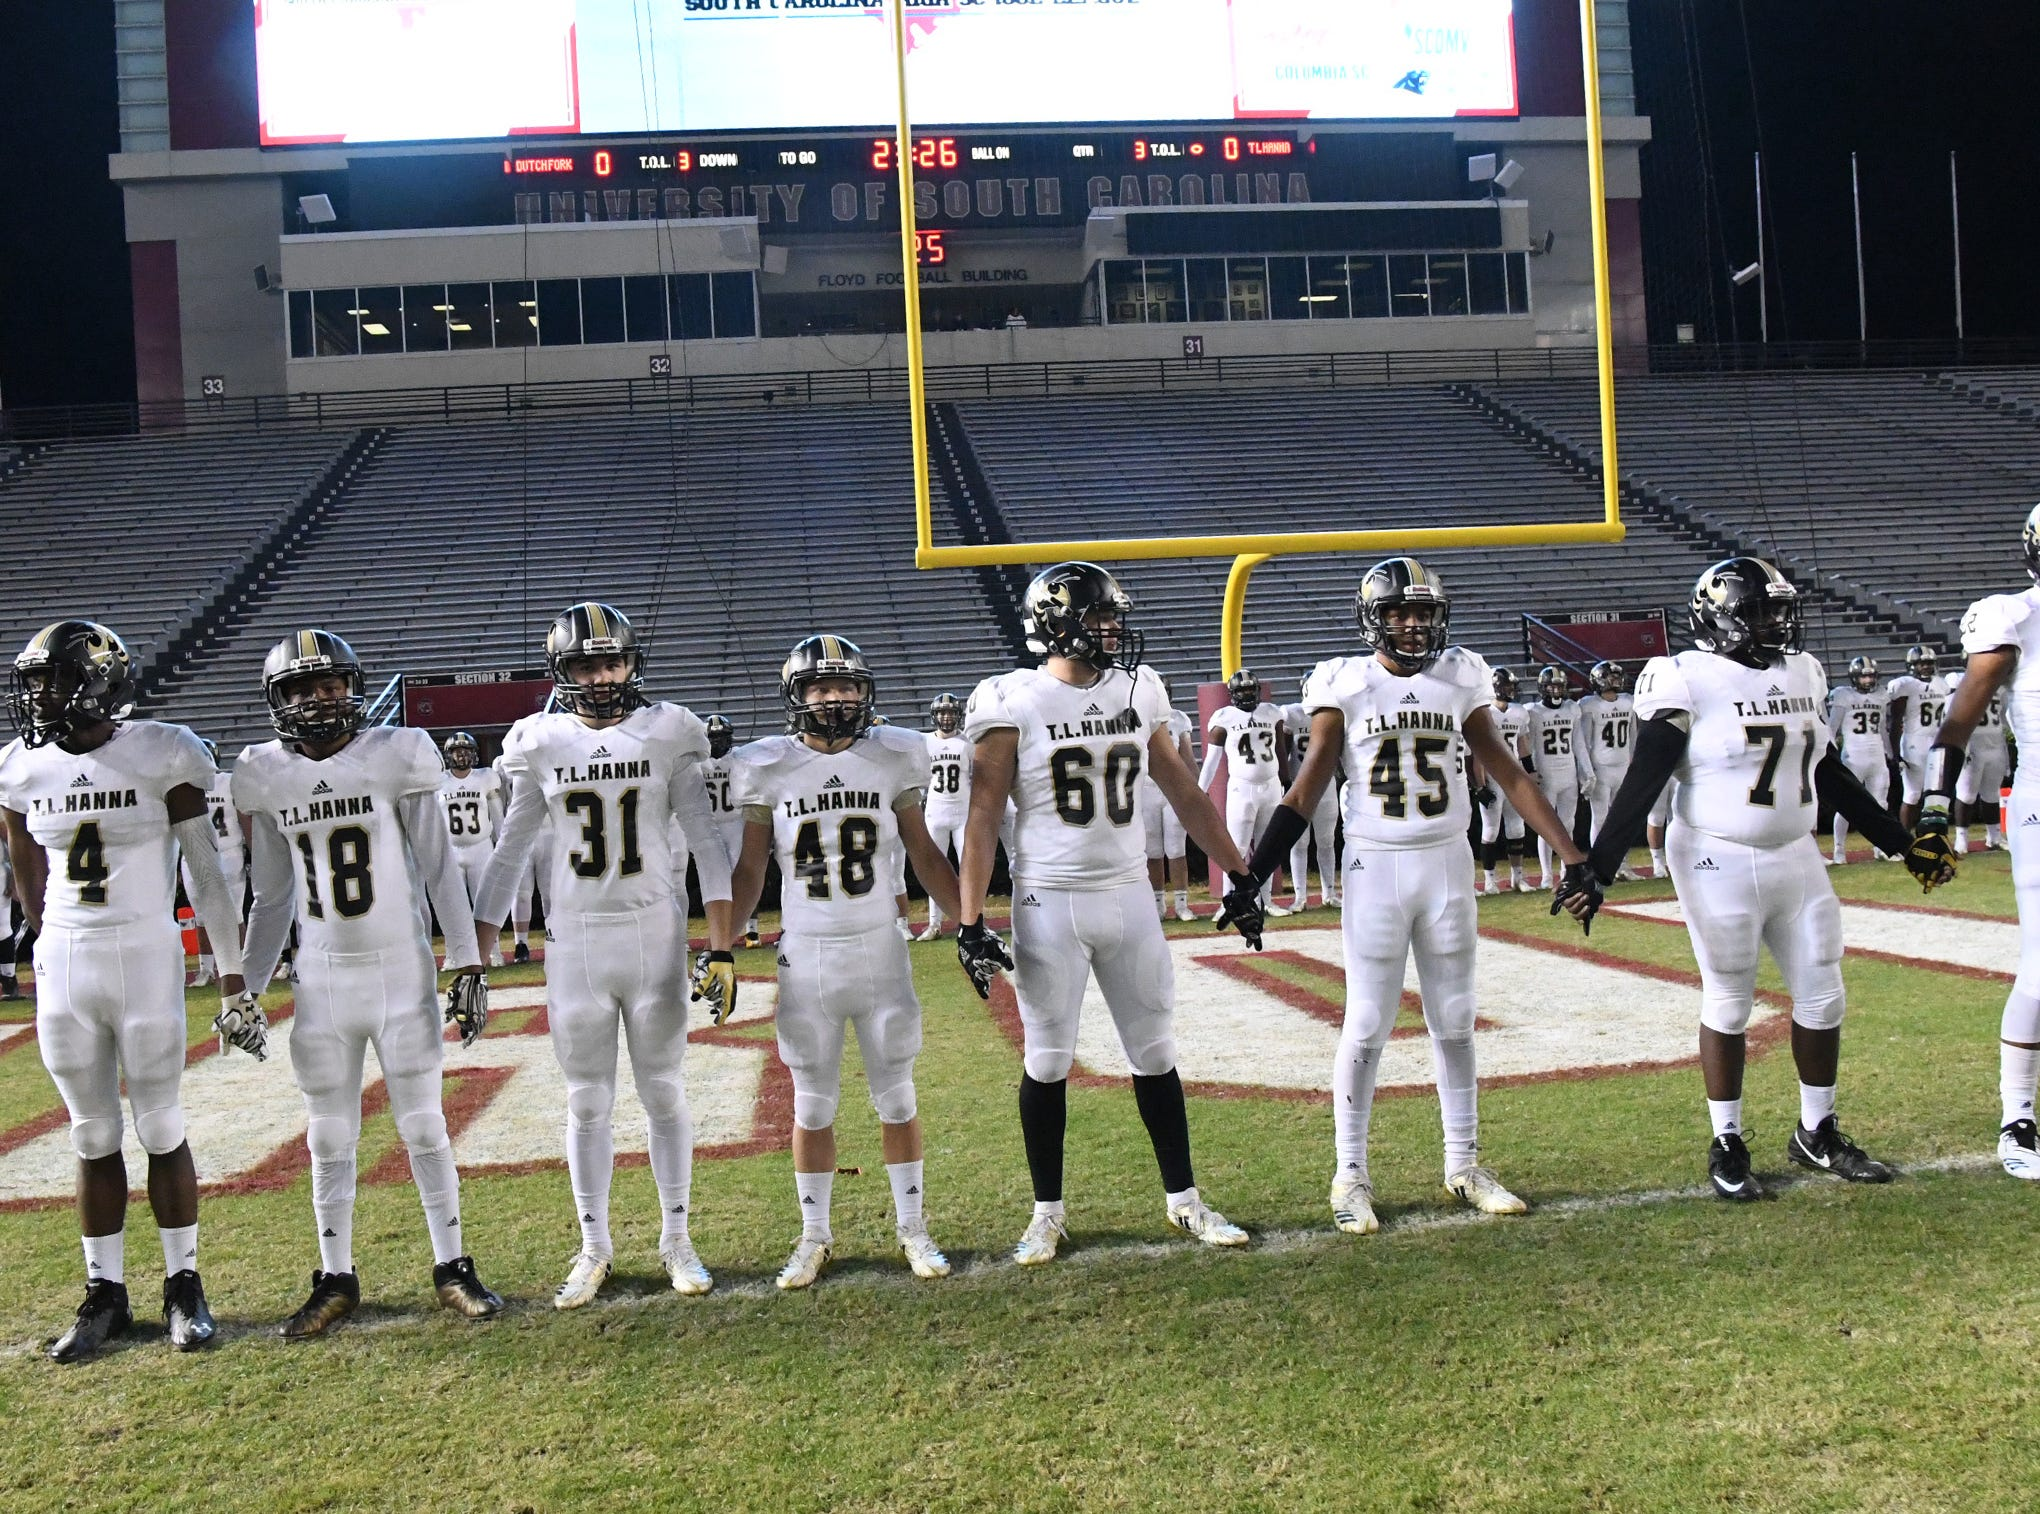 TL Hanna teammates warm up before the kickoff of the Class AAAAA state championship game at Williams-Brice Stadium in Columbia Saturday, December 8, 2018.